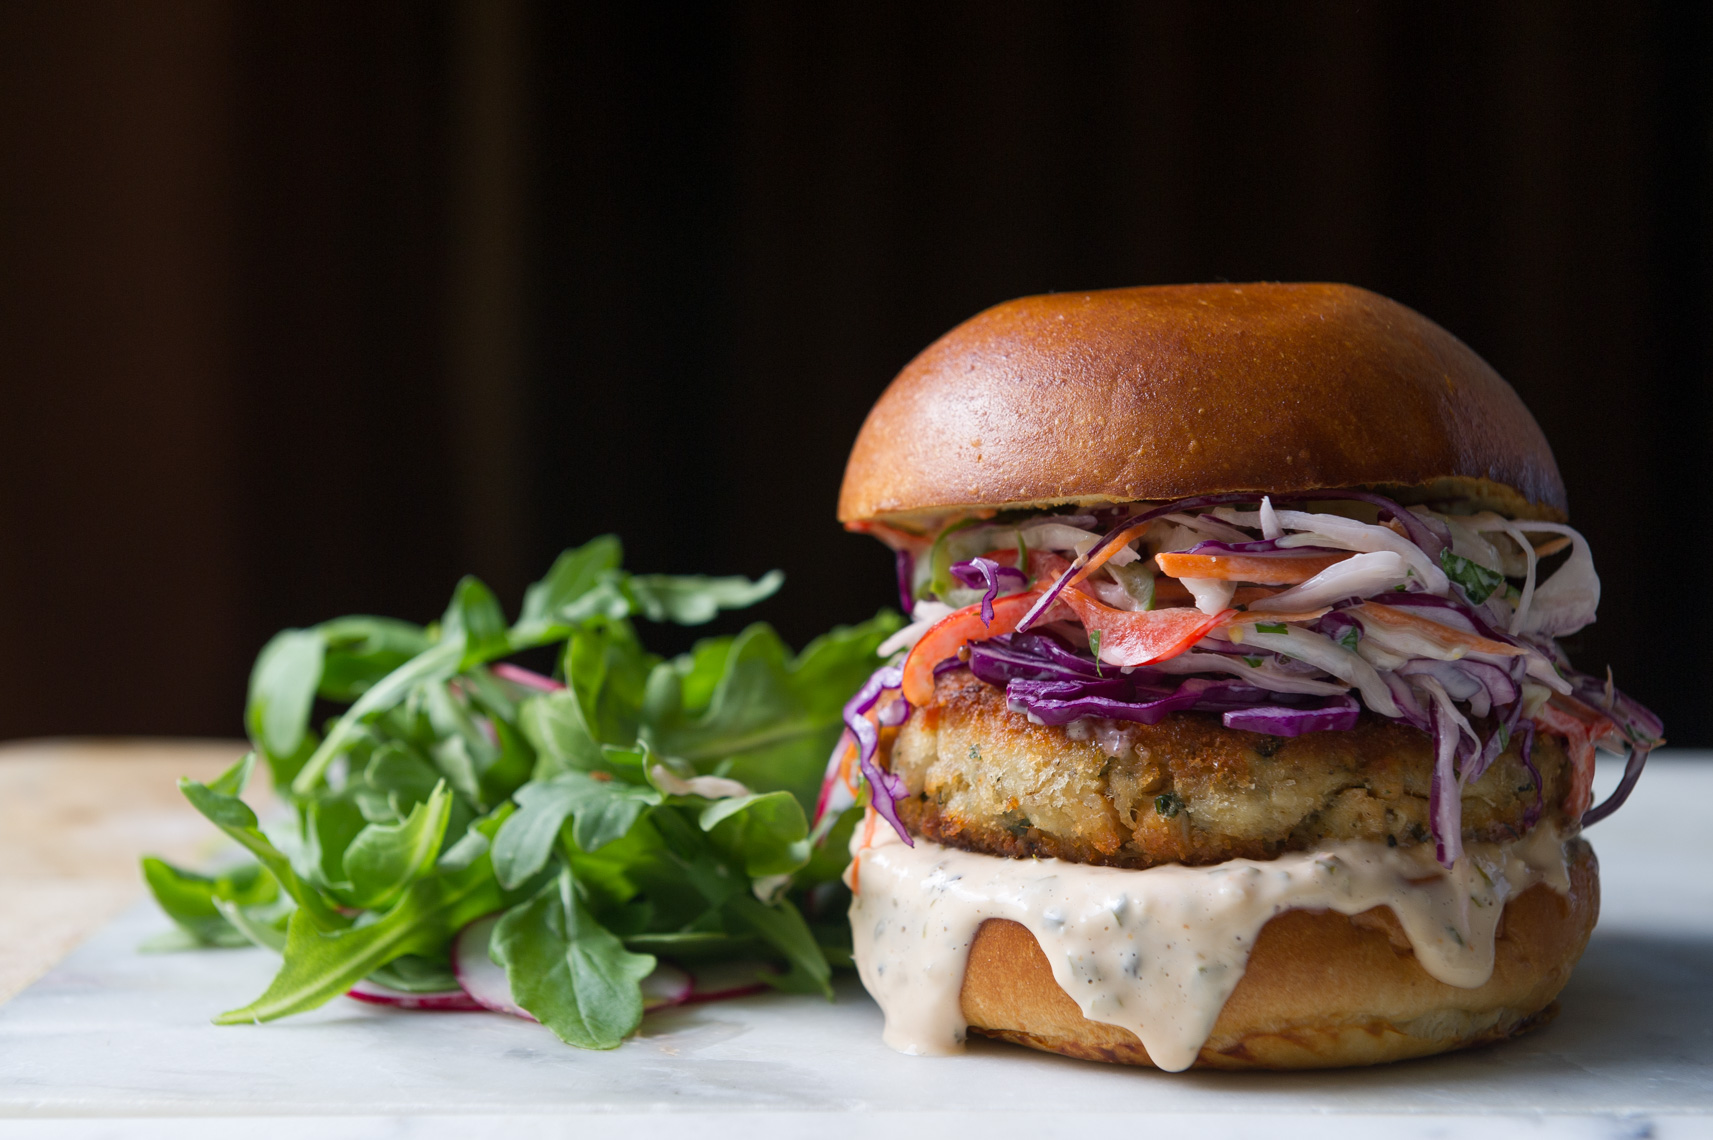 NYC Food Photographer - Crab Cake